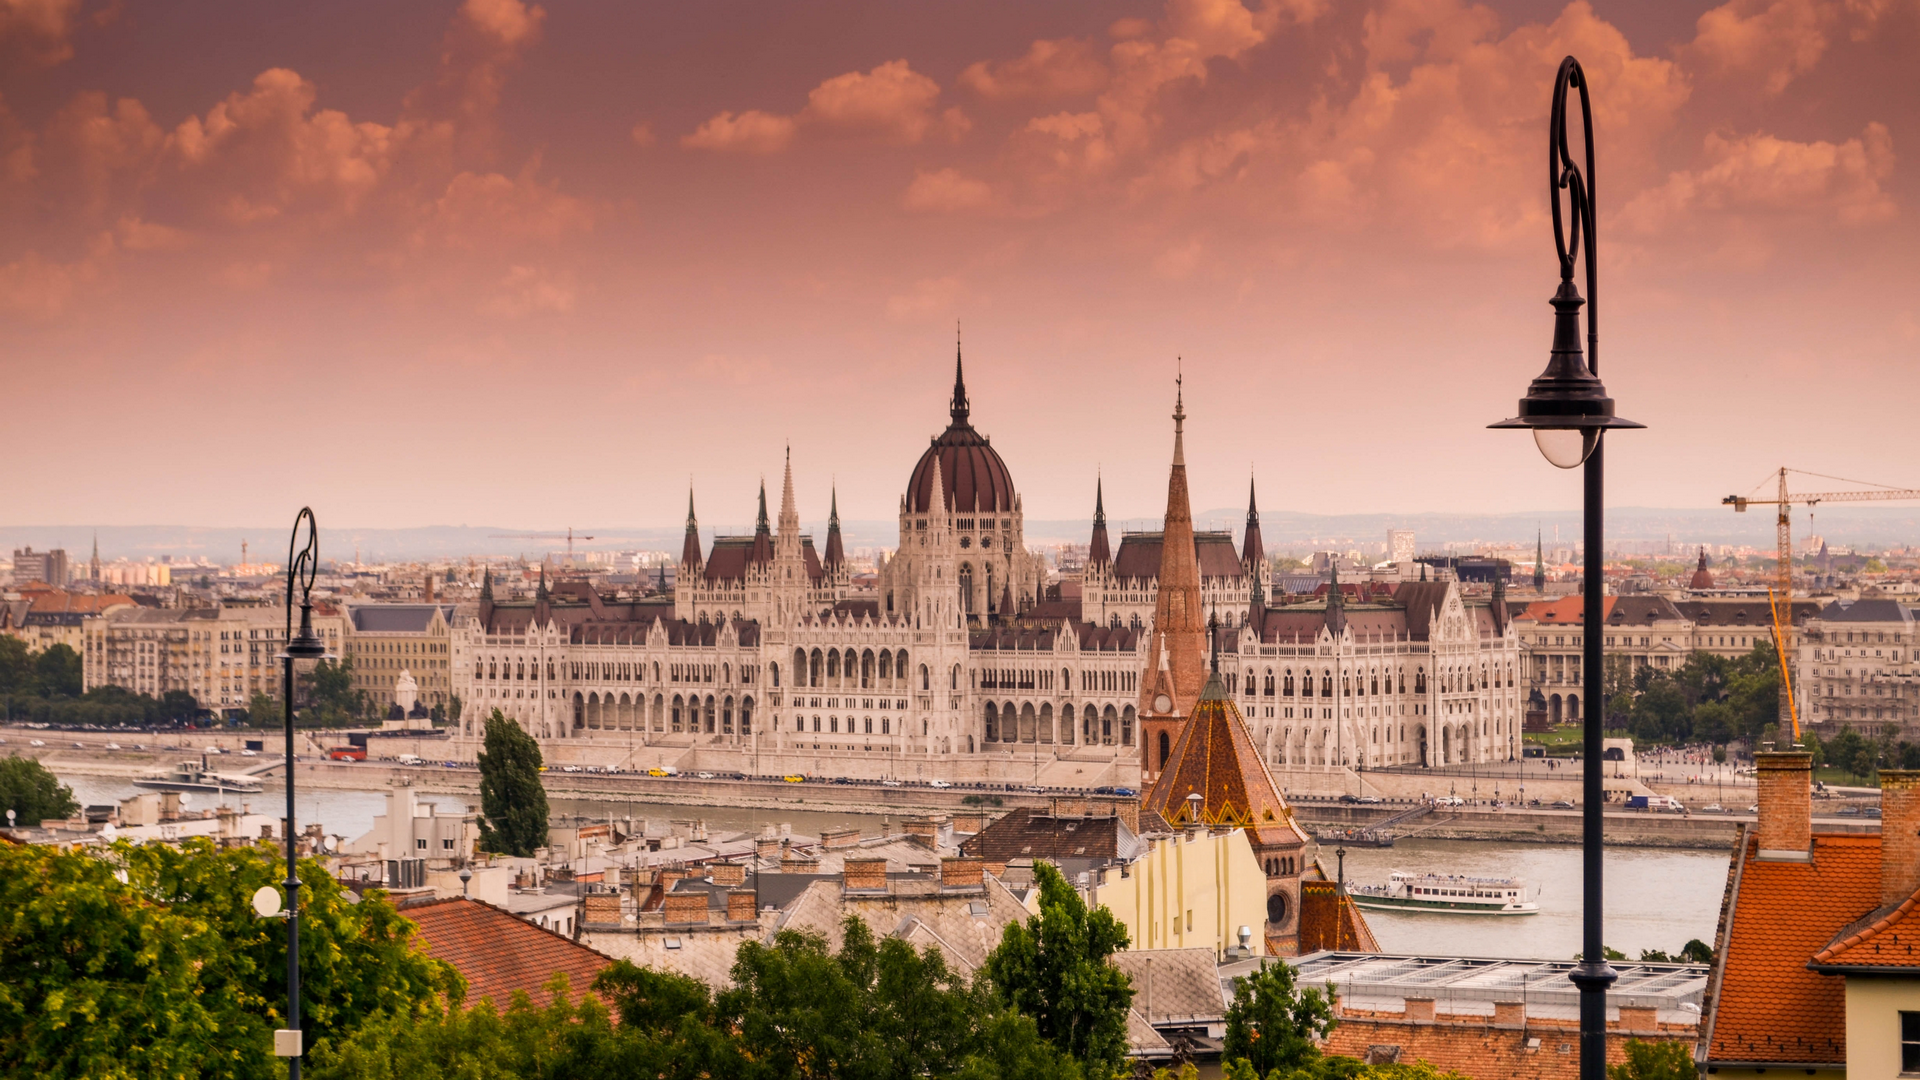 A view in Hungary